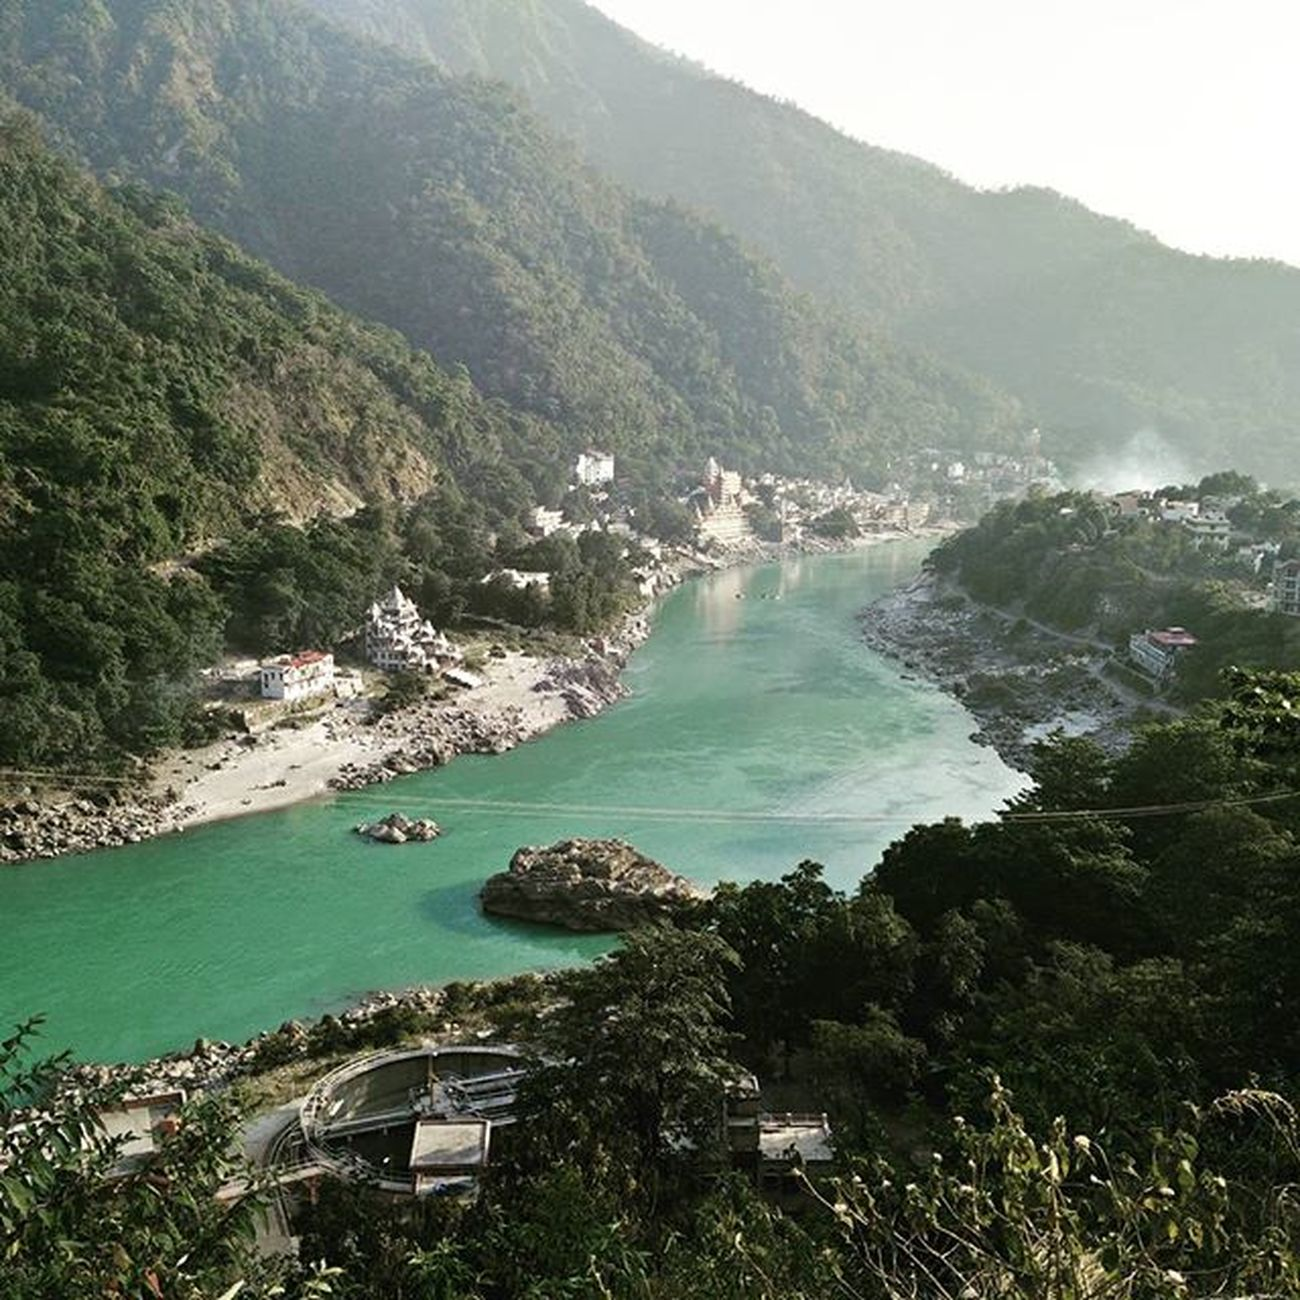 The river showcasing what I've become ... Calm on the surface but turbulent inside.. GrowingTooFast Lifequotes Instapic Naturelovers Wildlife PhonePhotography Oneplusonephotography HDP PassingBy Fromthehills Mobilephotography Journey Lifelikethis Theganges Lessonslearned Rishikeshdiaries Riverquotes Randomthought Capturedwhiledriving Nofilterneeded Naturelessons Greenfreak Traveller Hills Riding amateurphotographer aspiringphotographer greenwater greenfreak grammasters3